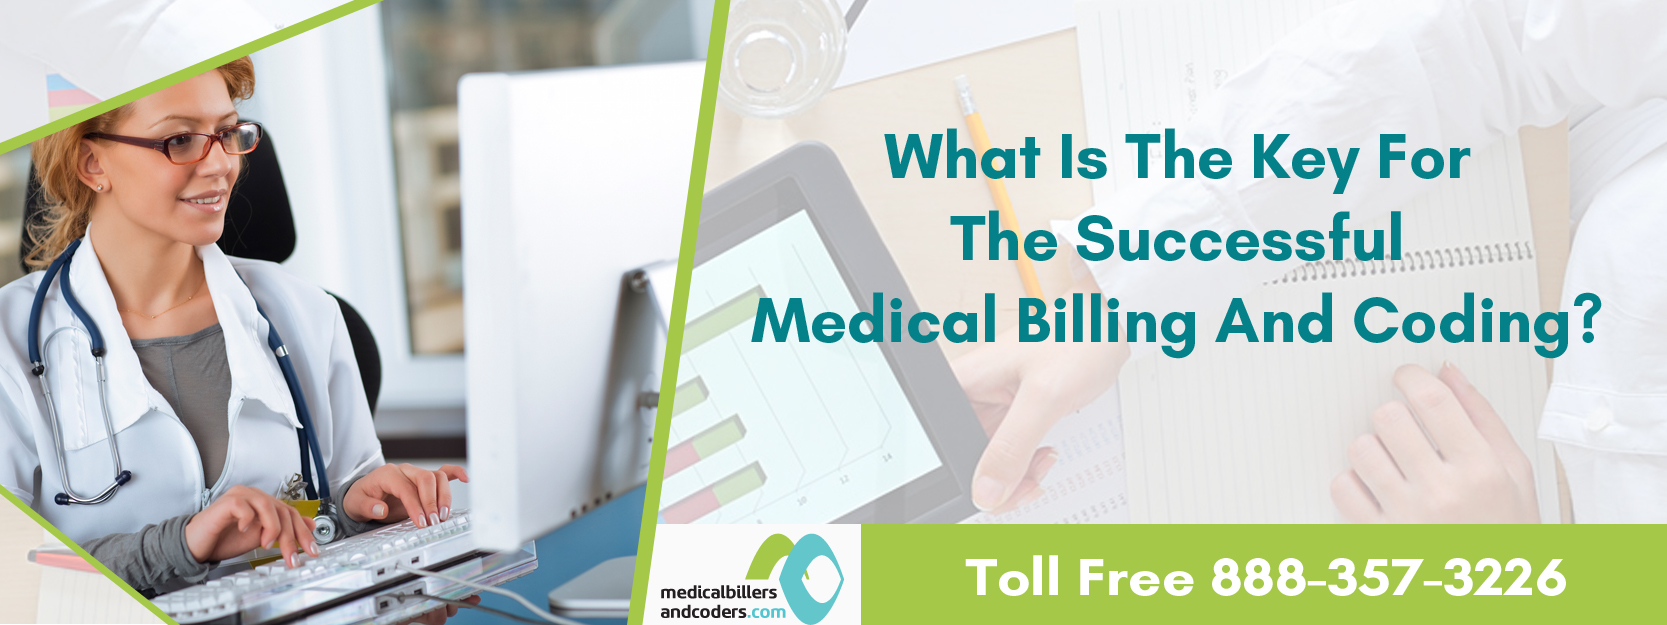 What-Is-The-Key-For-The-Successful-Medical-Billing-And-Coding